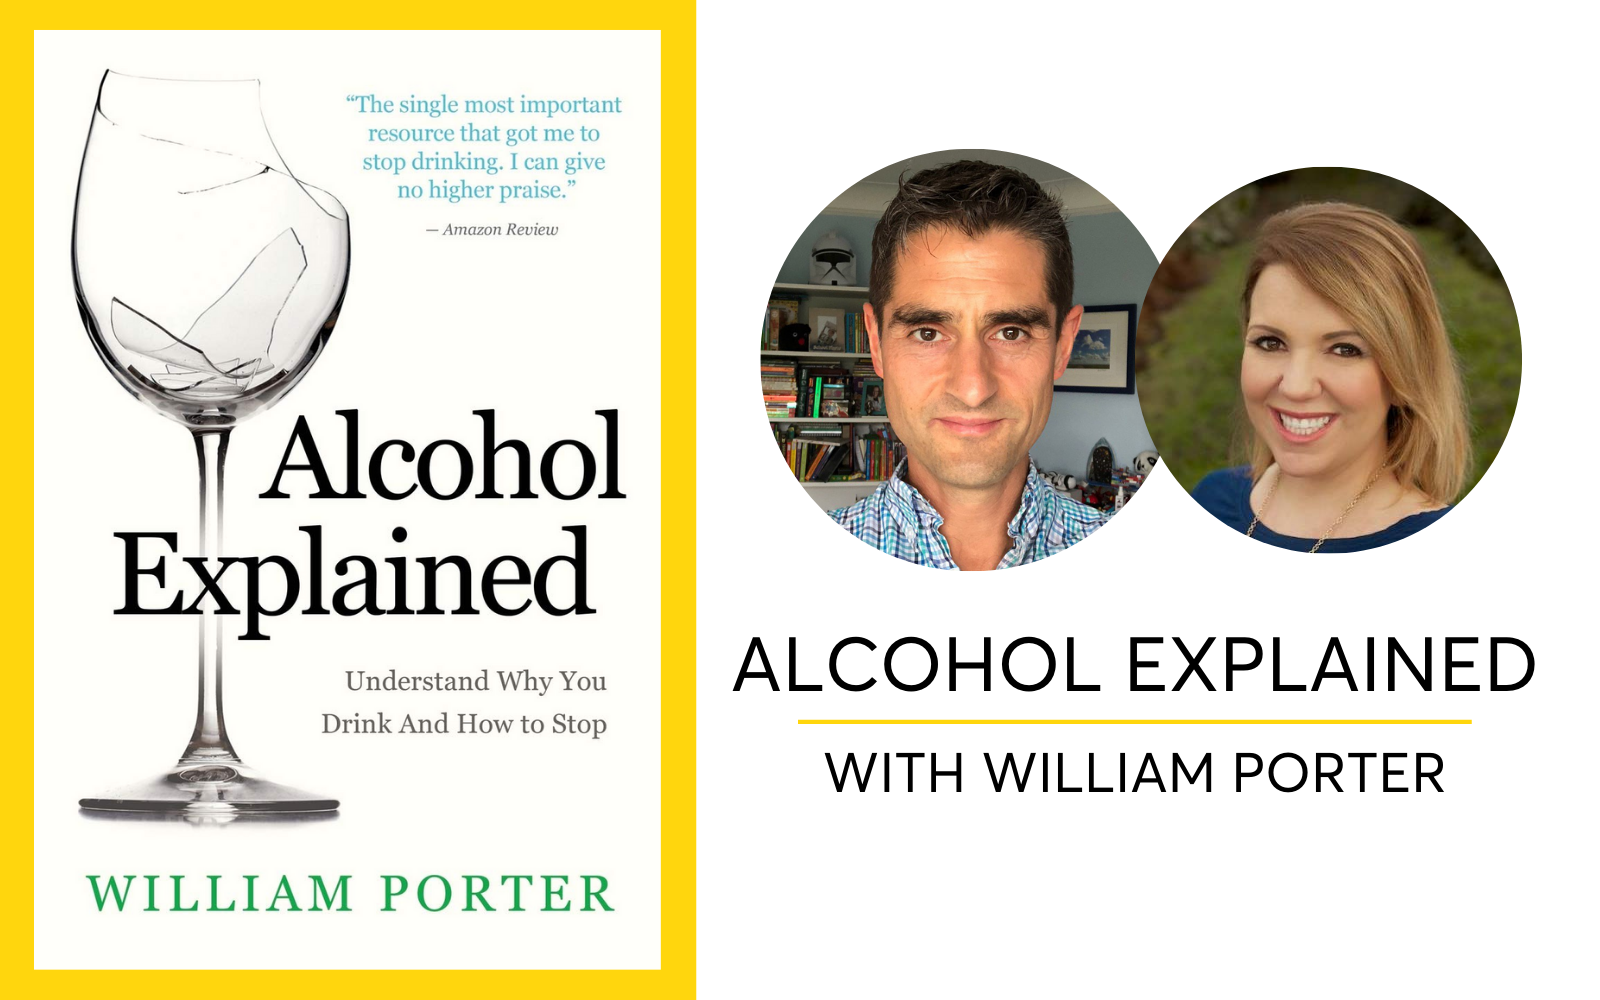 Alcohol Explained with William Porter